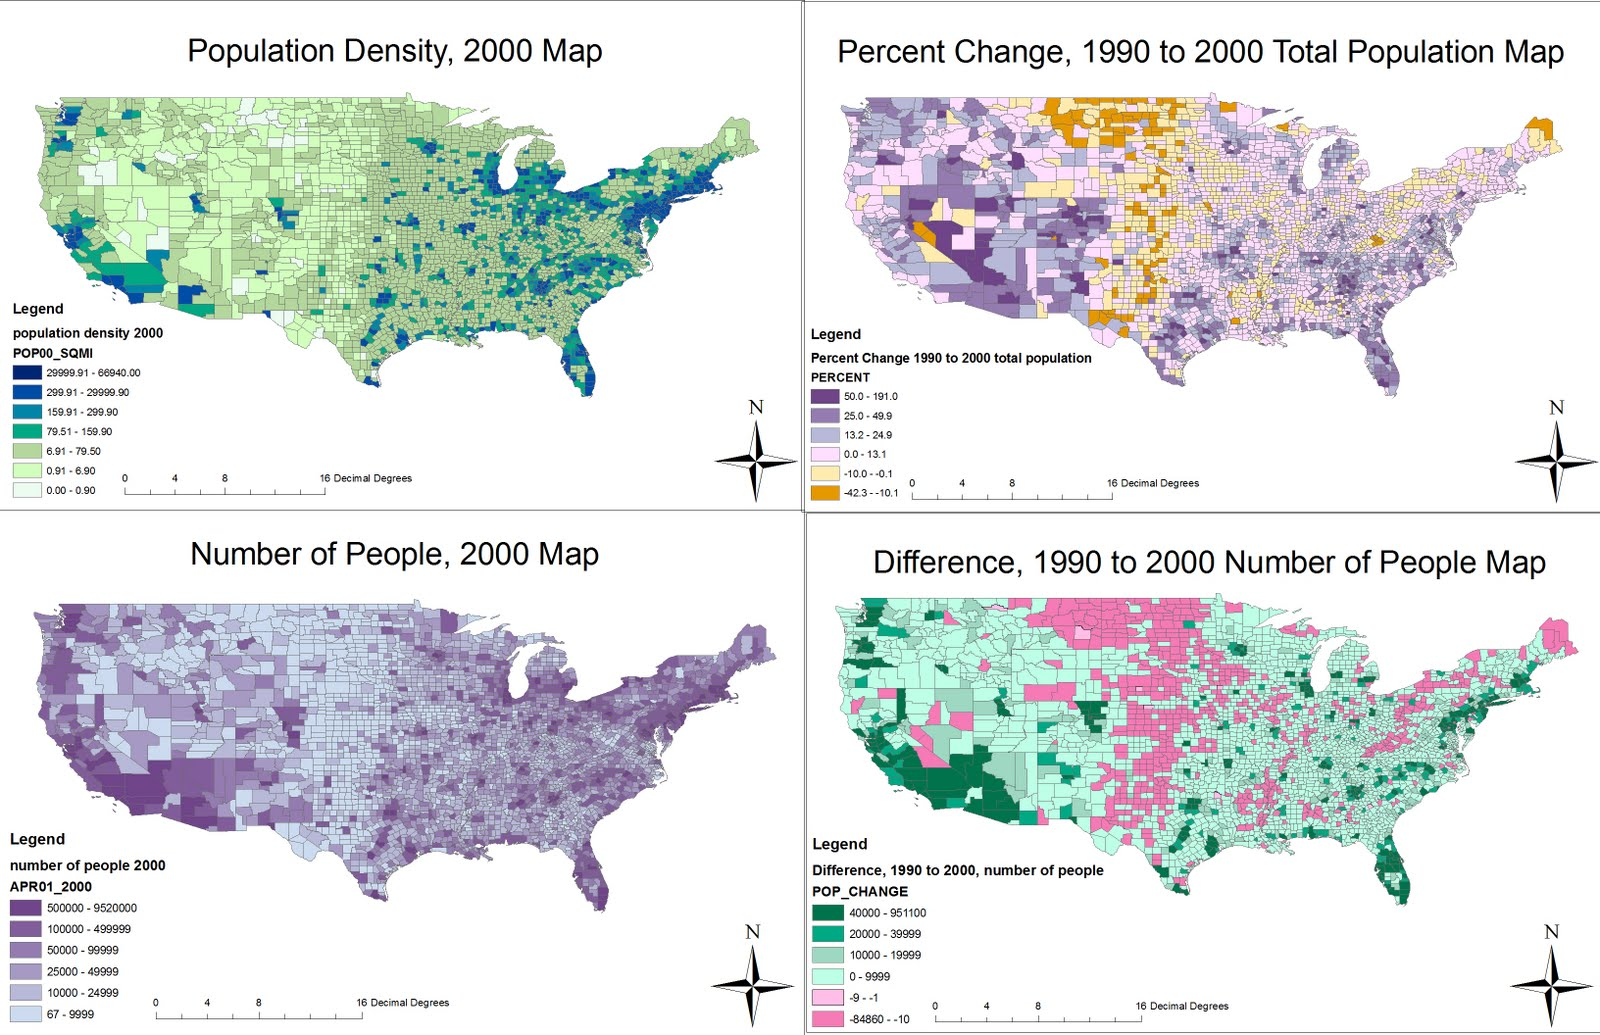 the population density 2000 map shows the population density in units of people per square mile of each county in the u s the calculations were made by